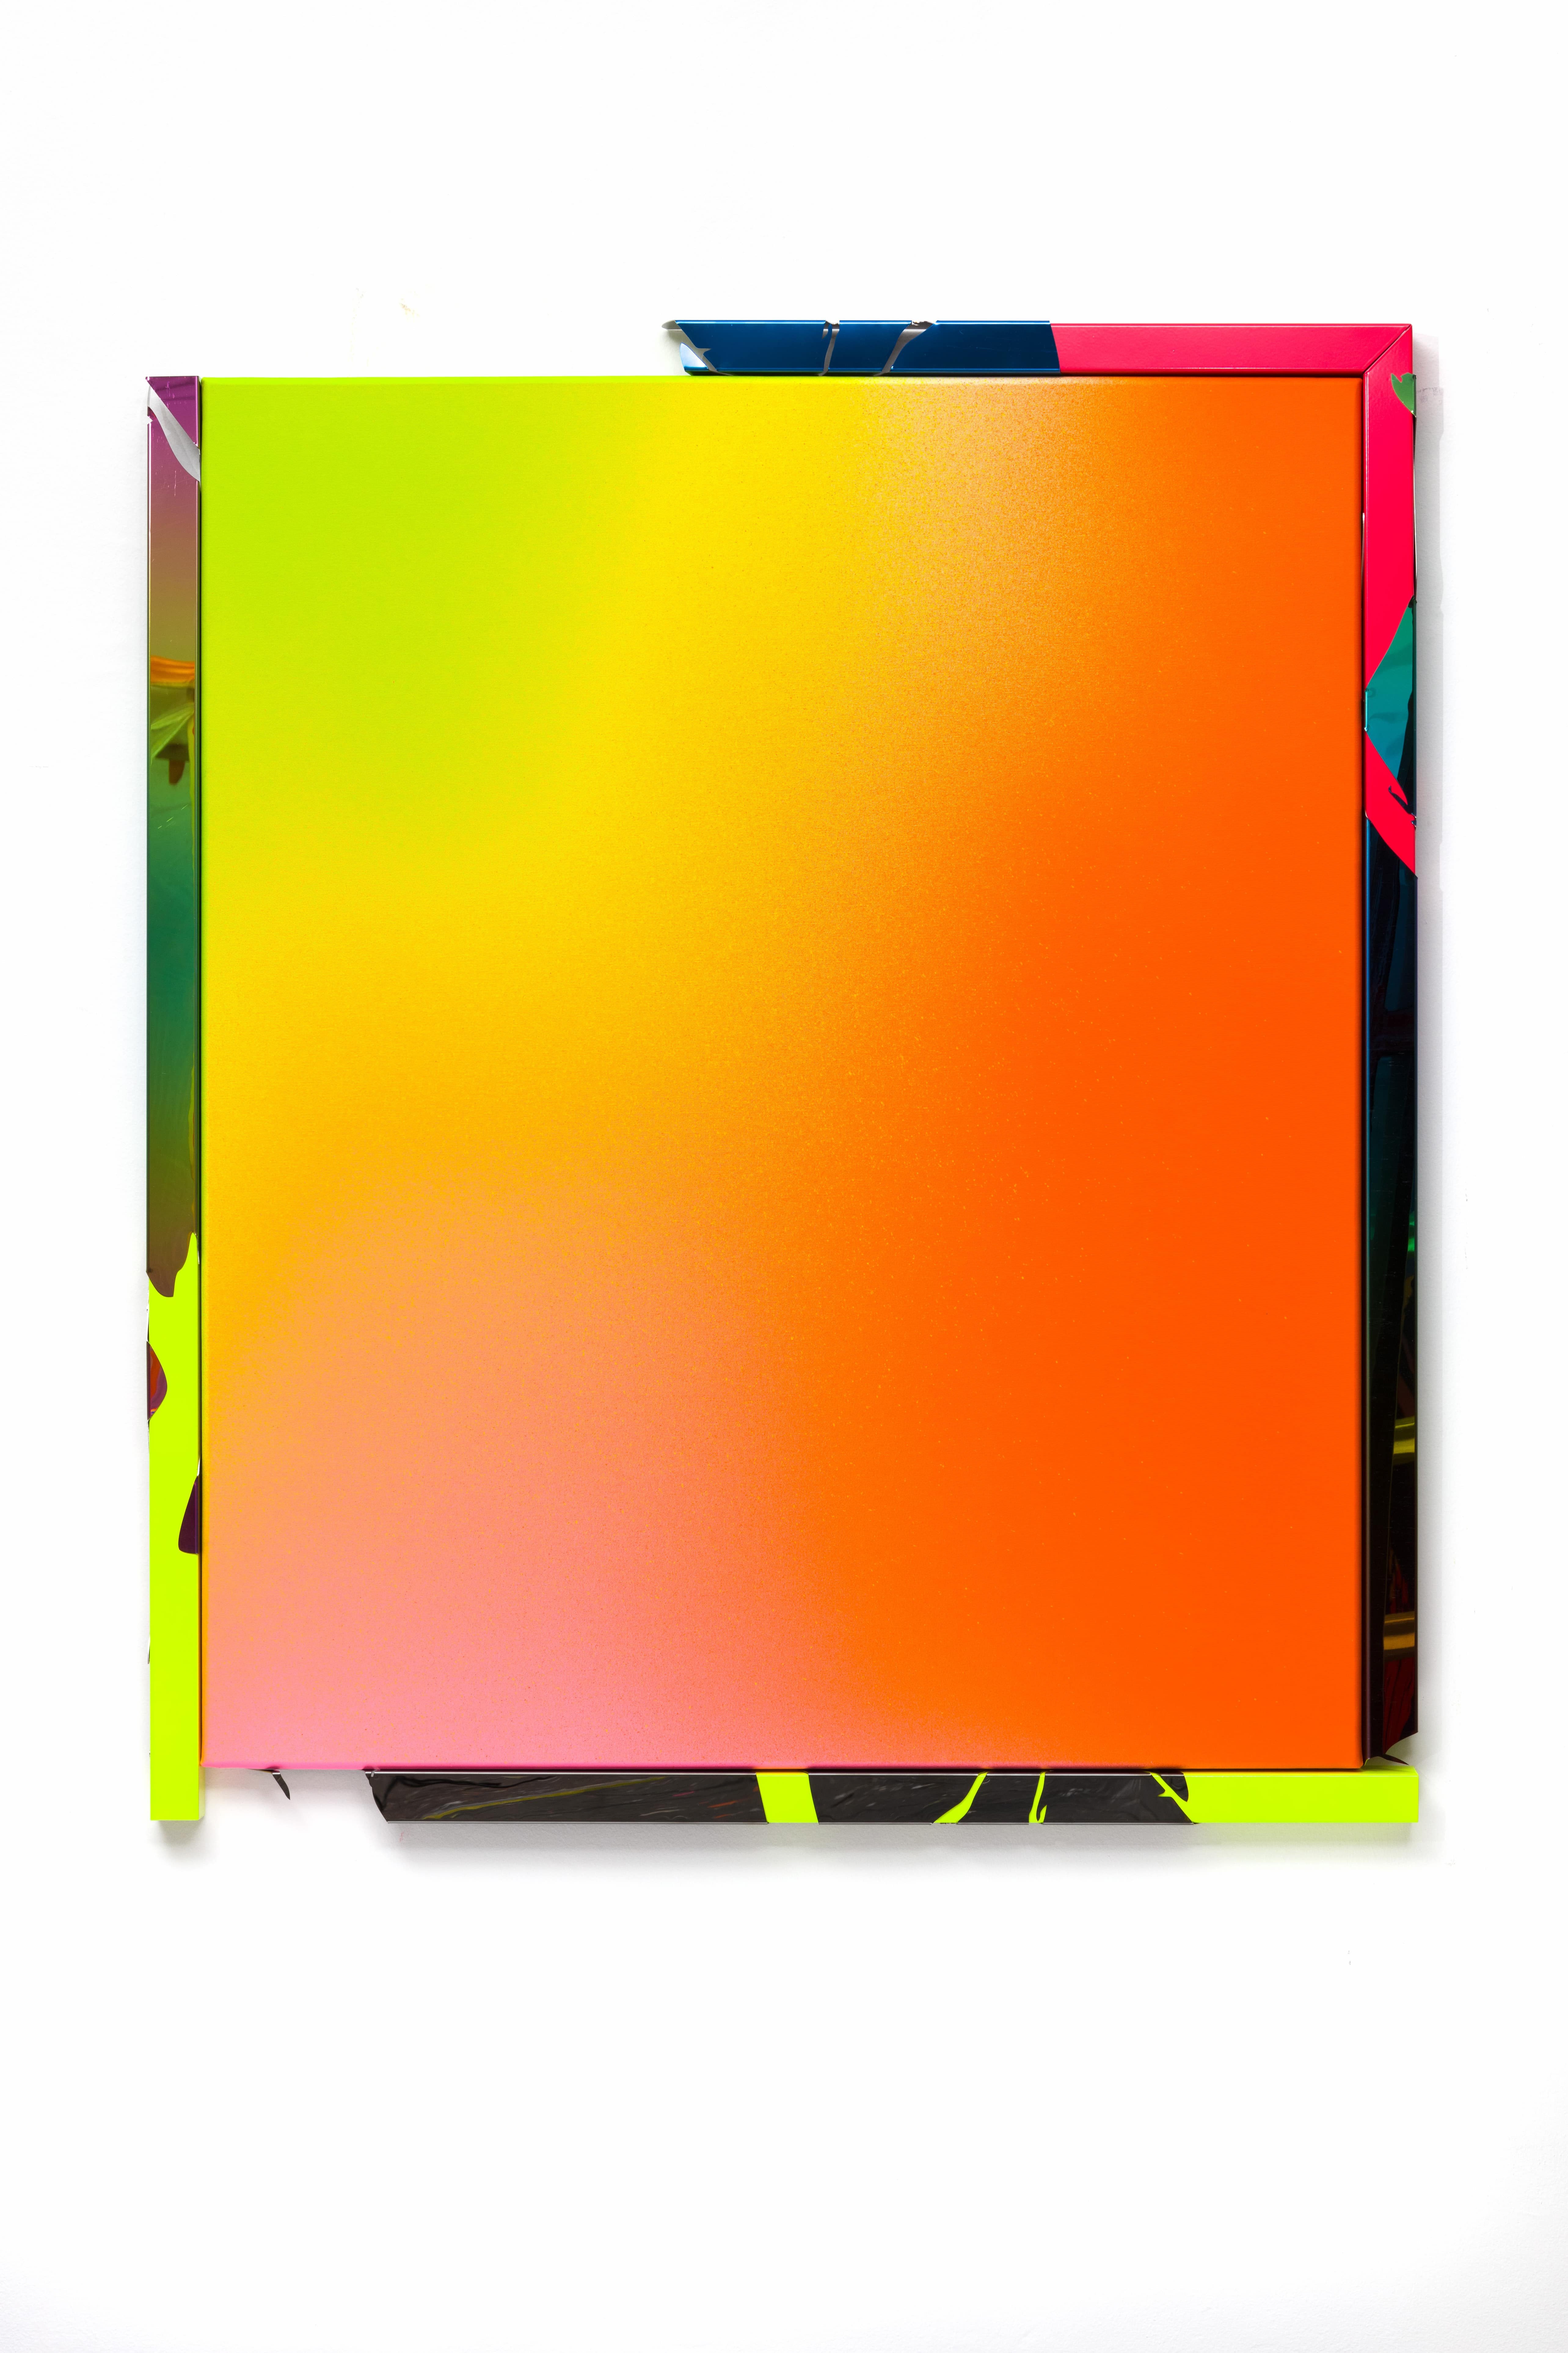 NemesM_Silence-Paintings-03_2021_129x109cm_PVD-coated-stainless-steel-powder-coated-stainless-steel-acrylic-canvas-wood-min